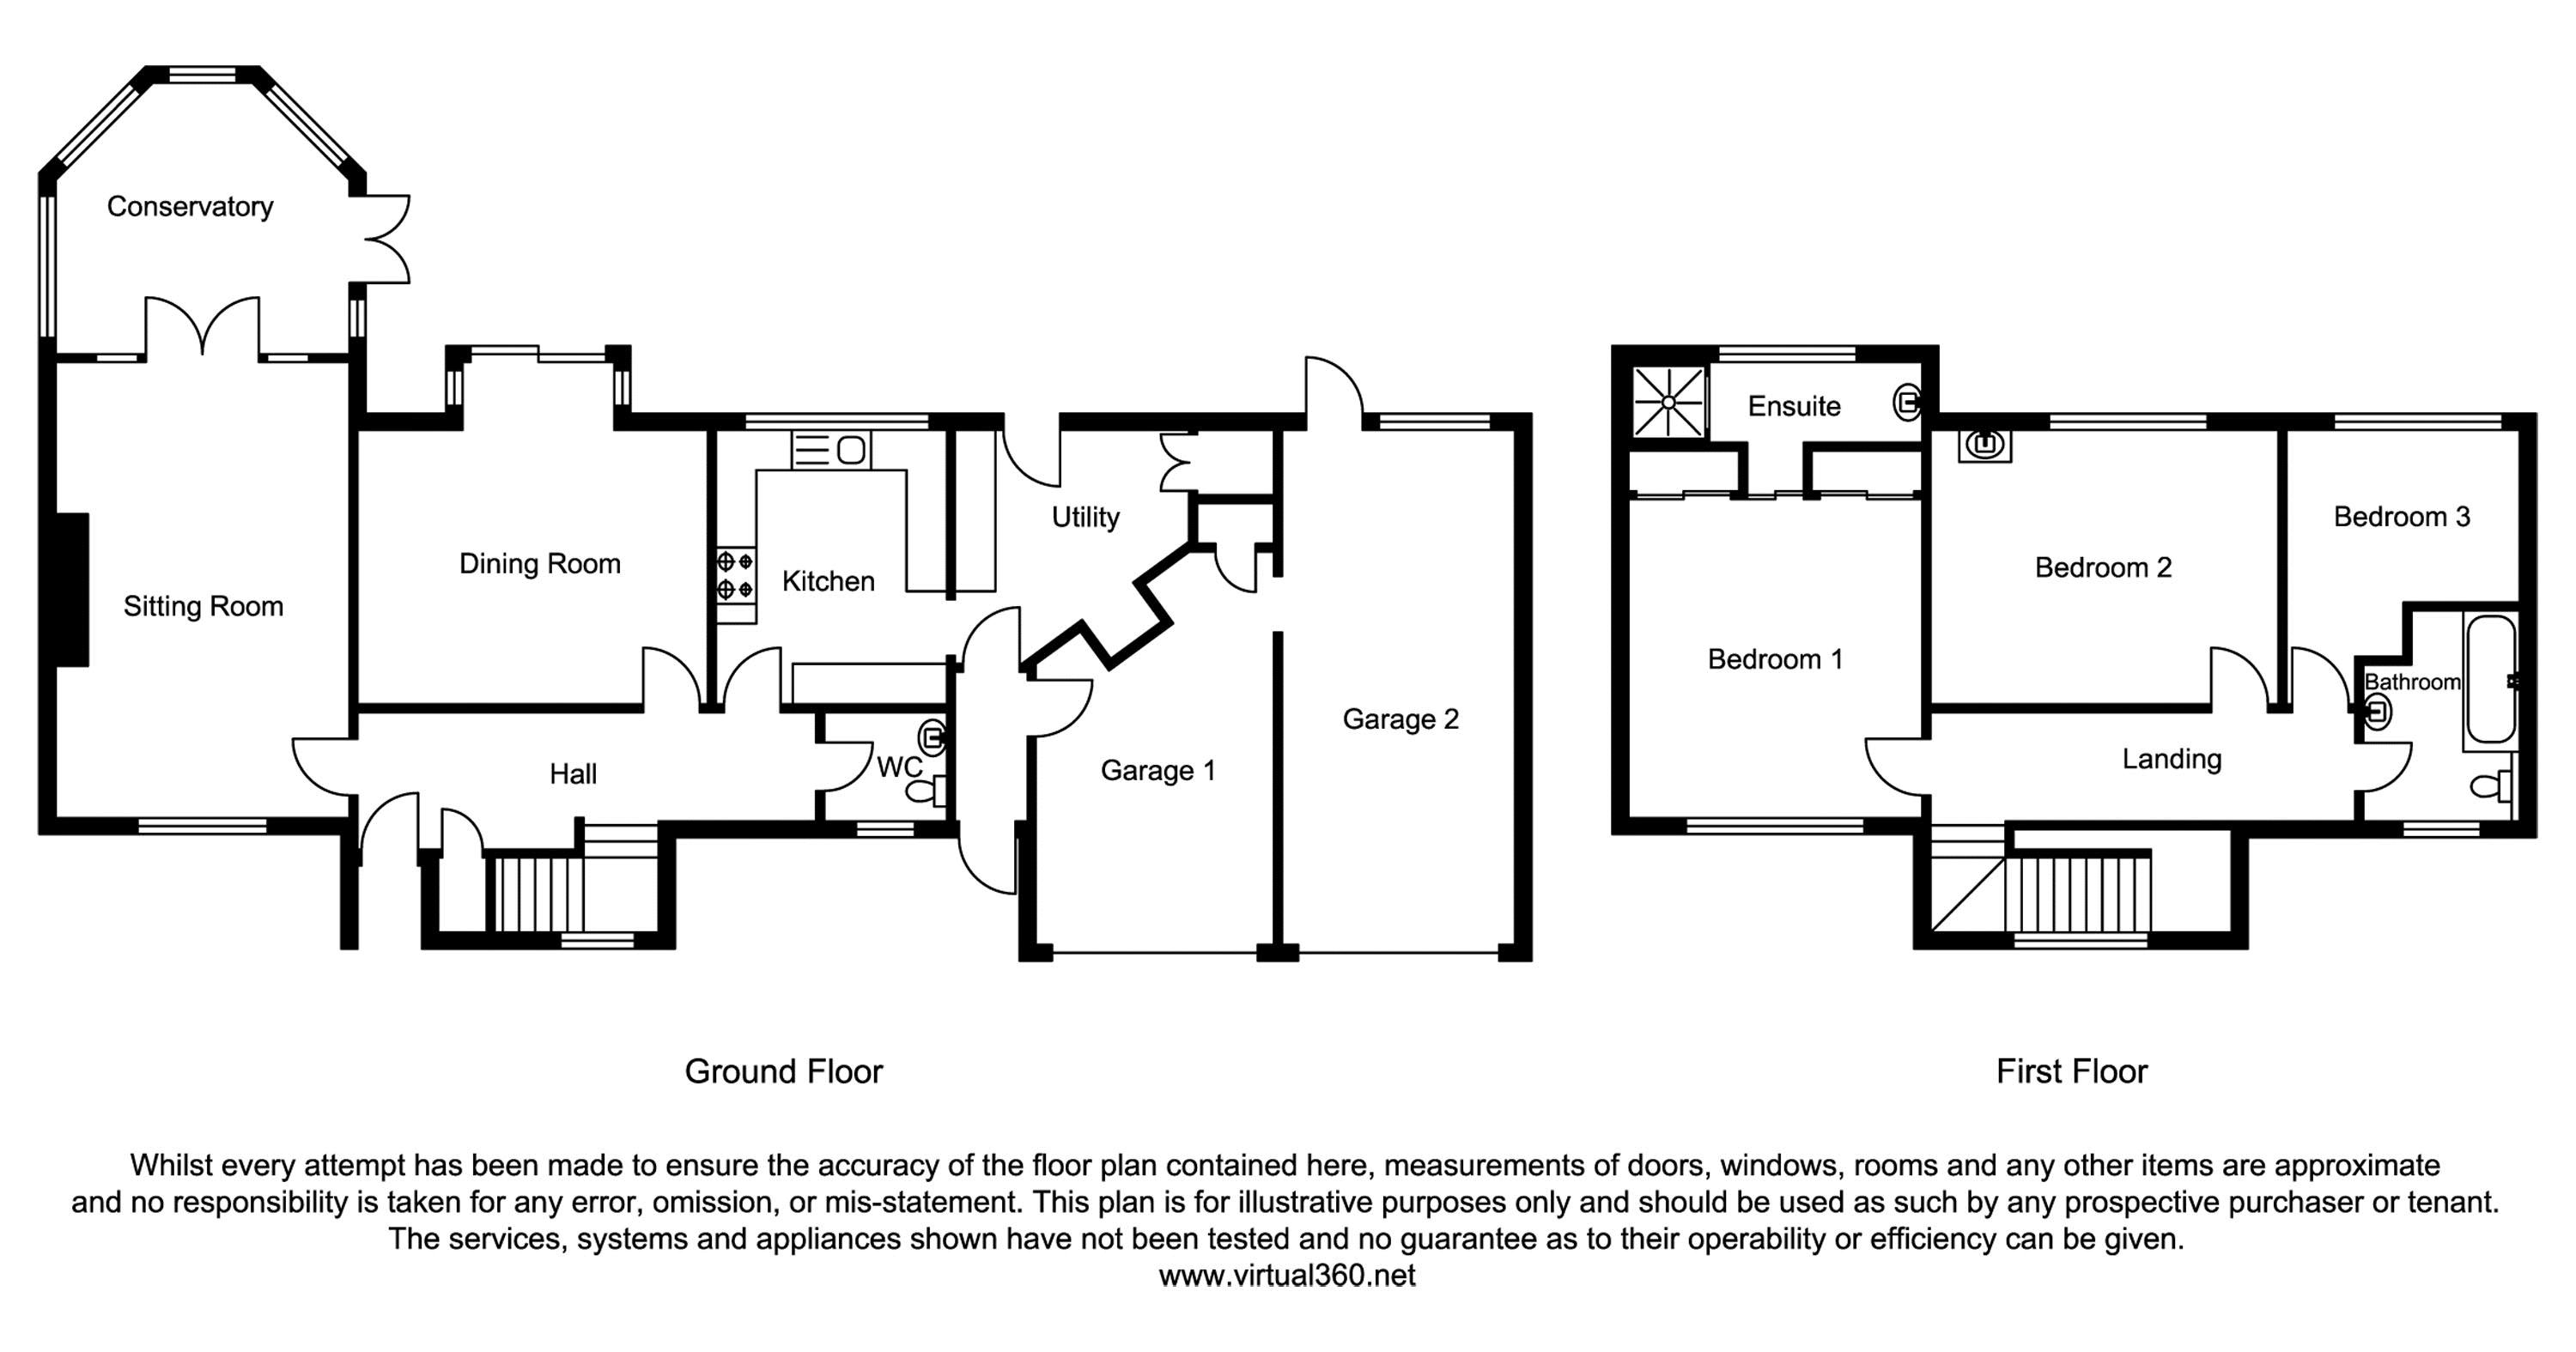 The Drive, Copthorne floor plan